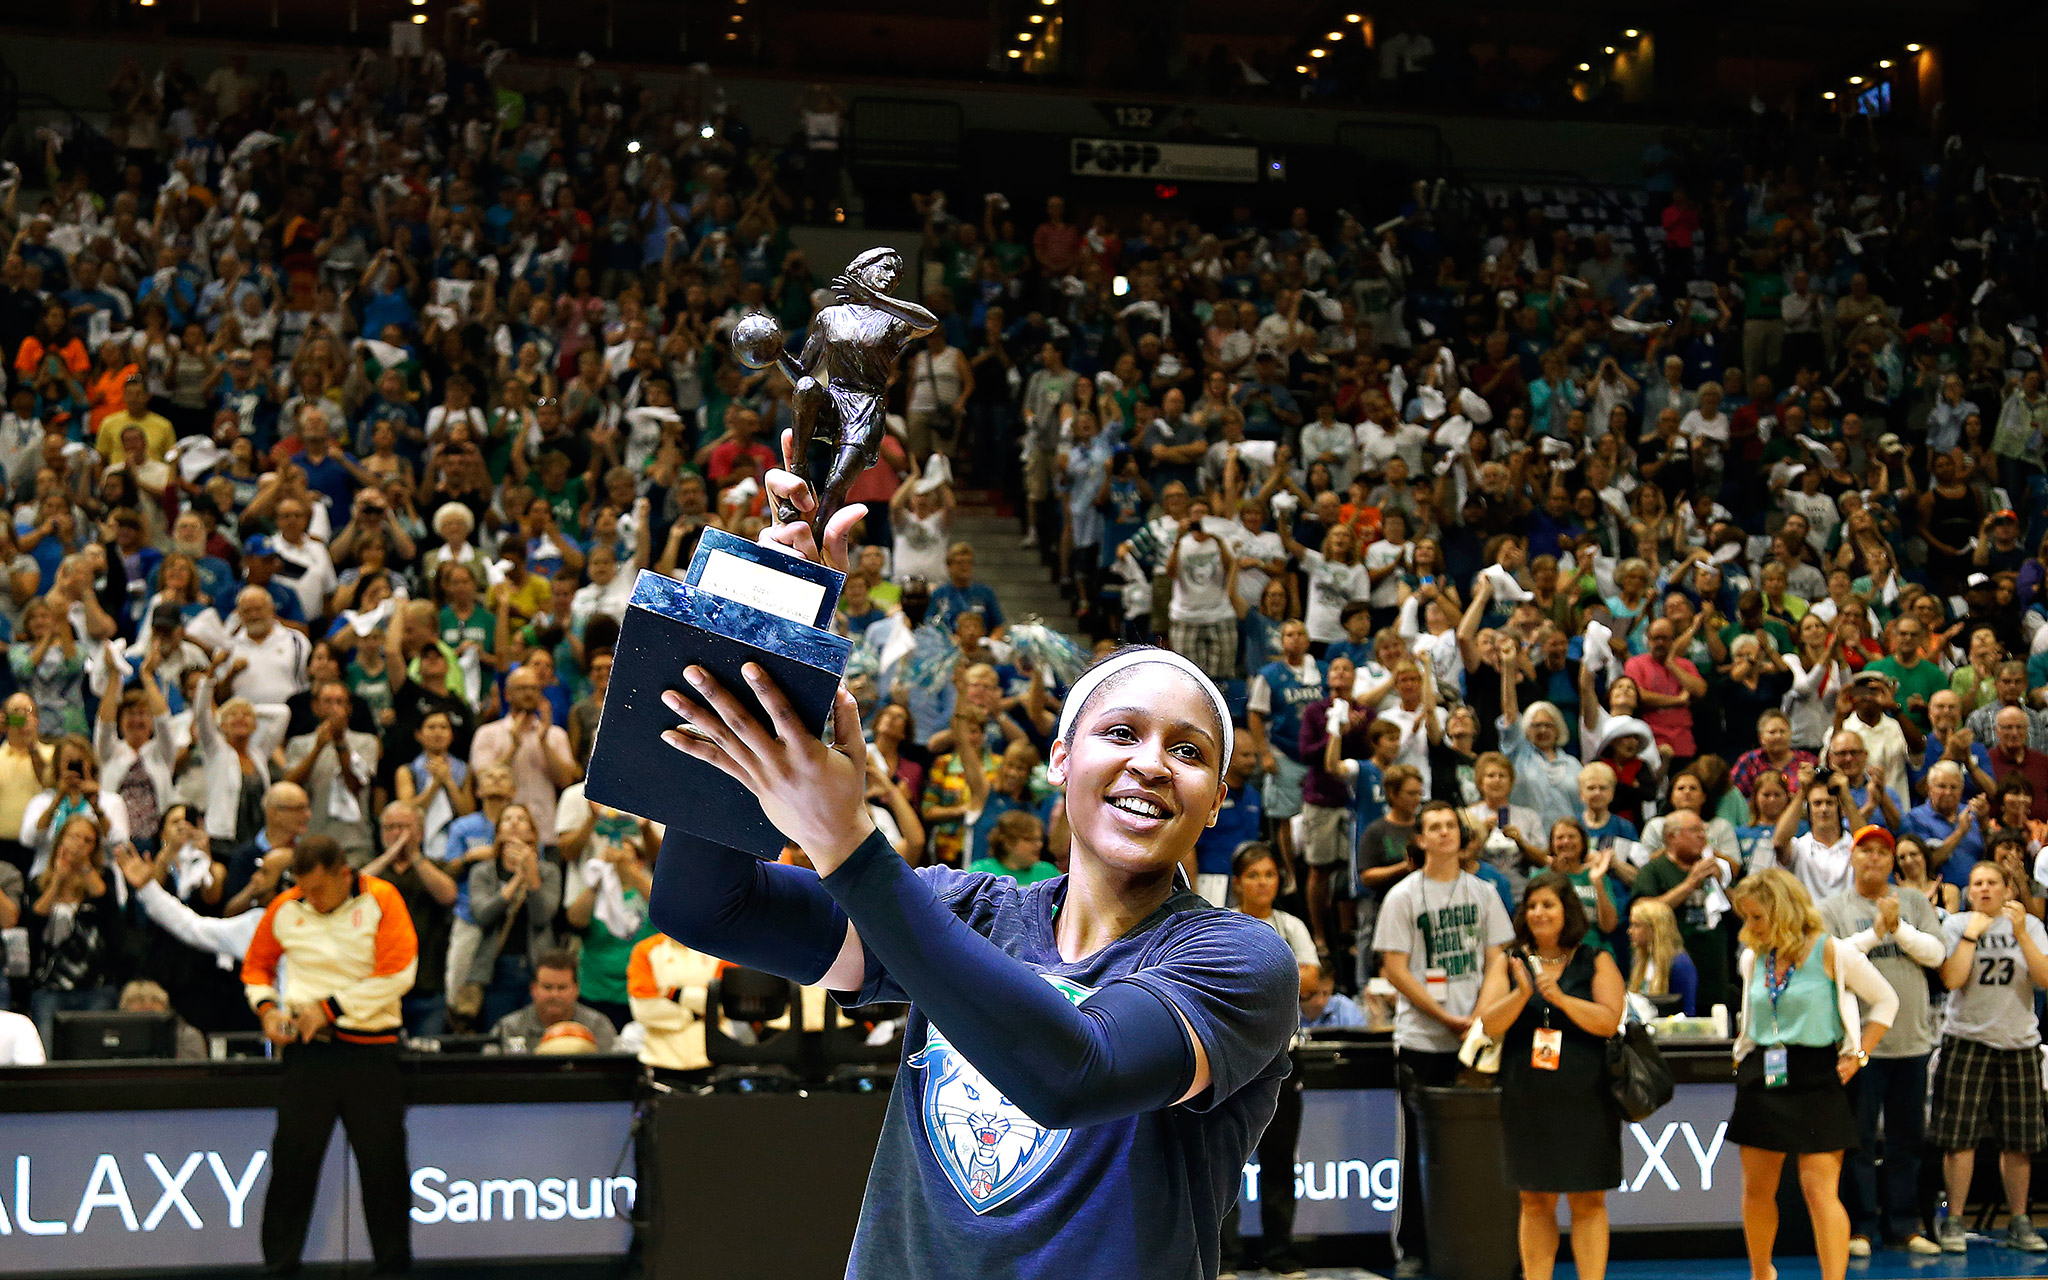 Minnesota Lynx forward Maya Moore celebrates with fans after receiving her WNBA MVP award prior to Game 1 of the Western Conference semifinals against the San Antonio Stars in Minneapolis.